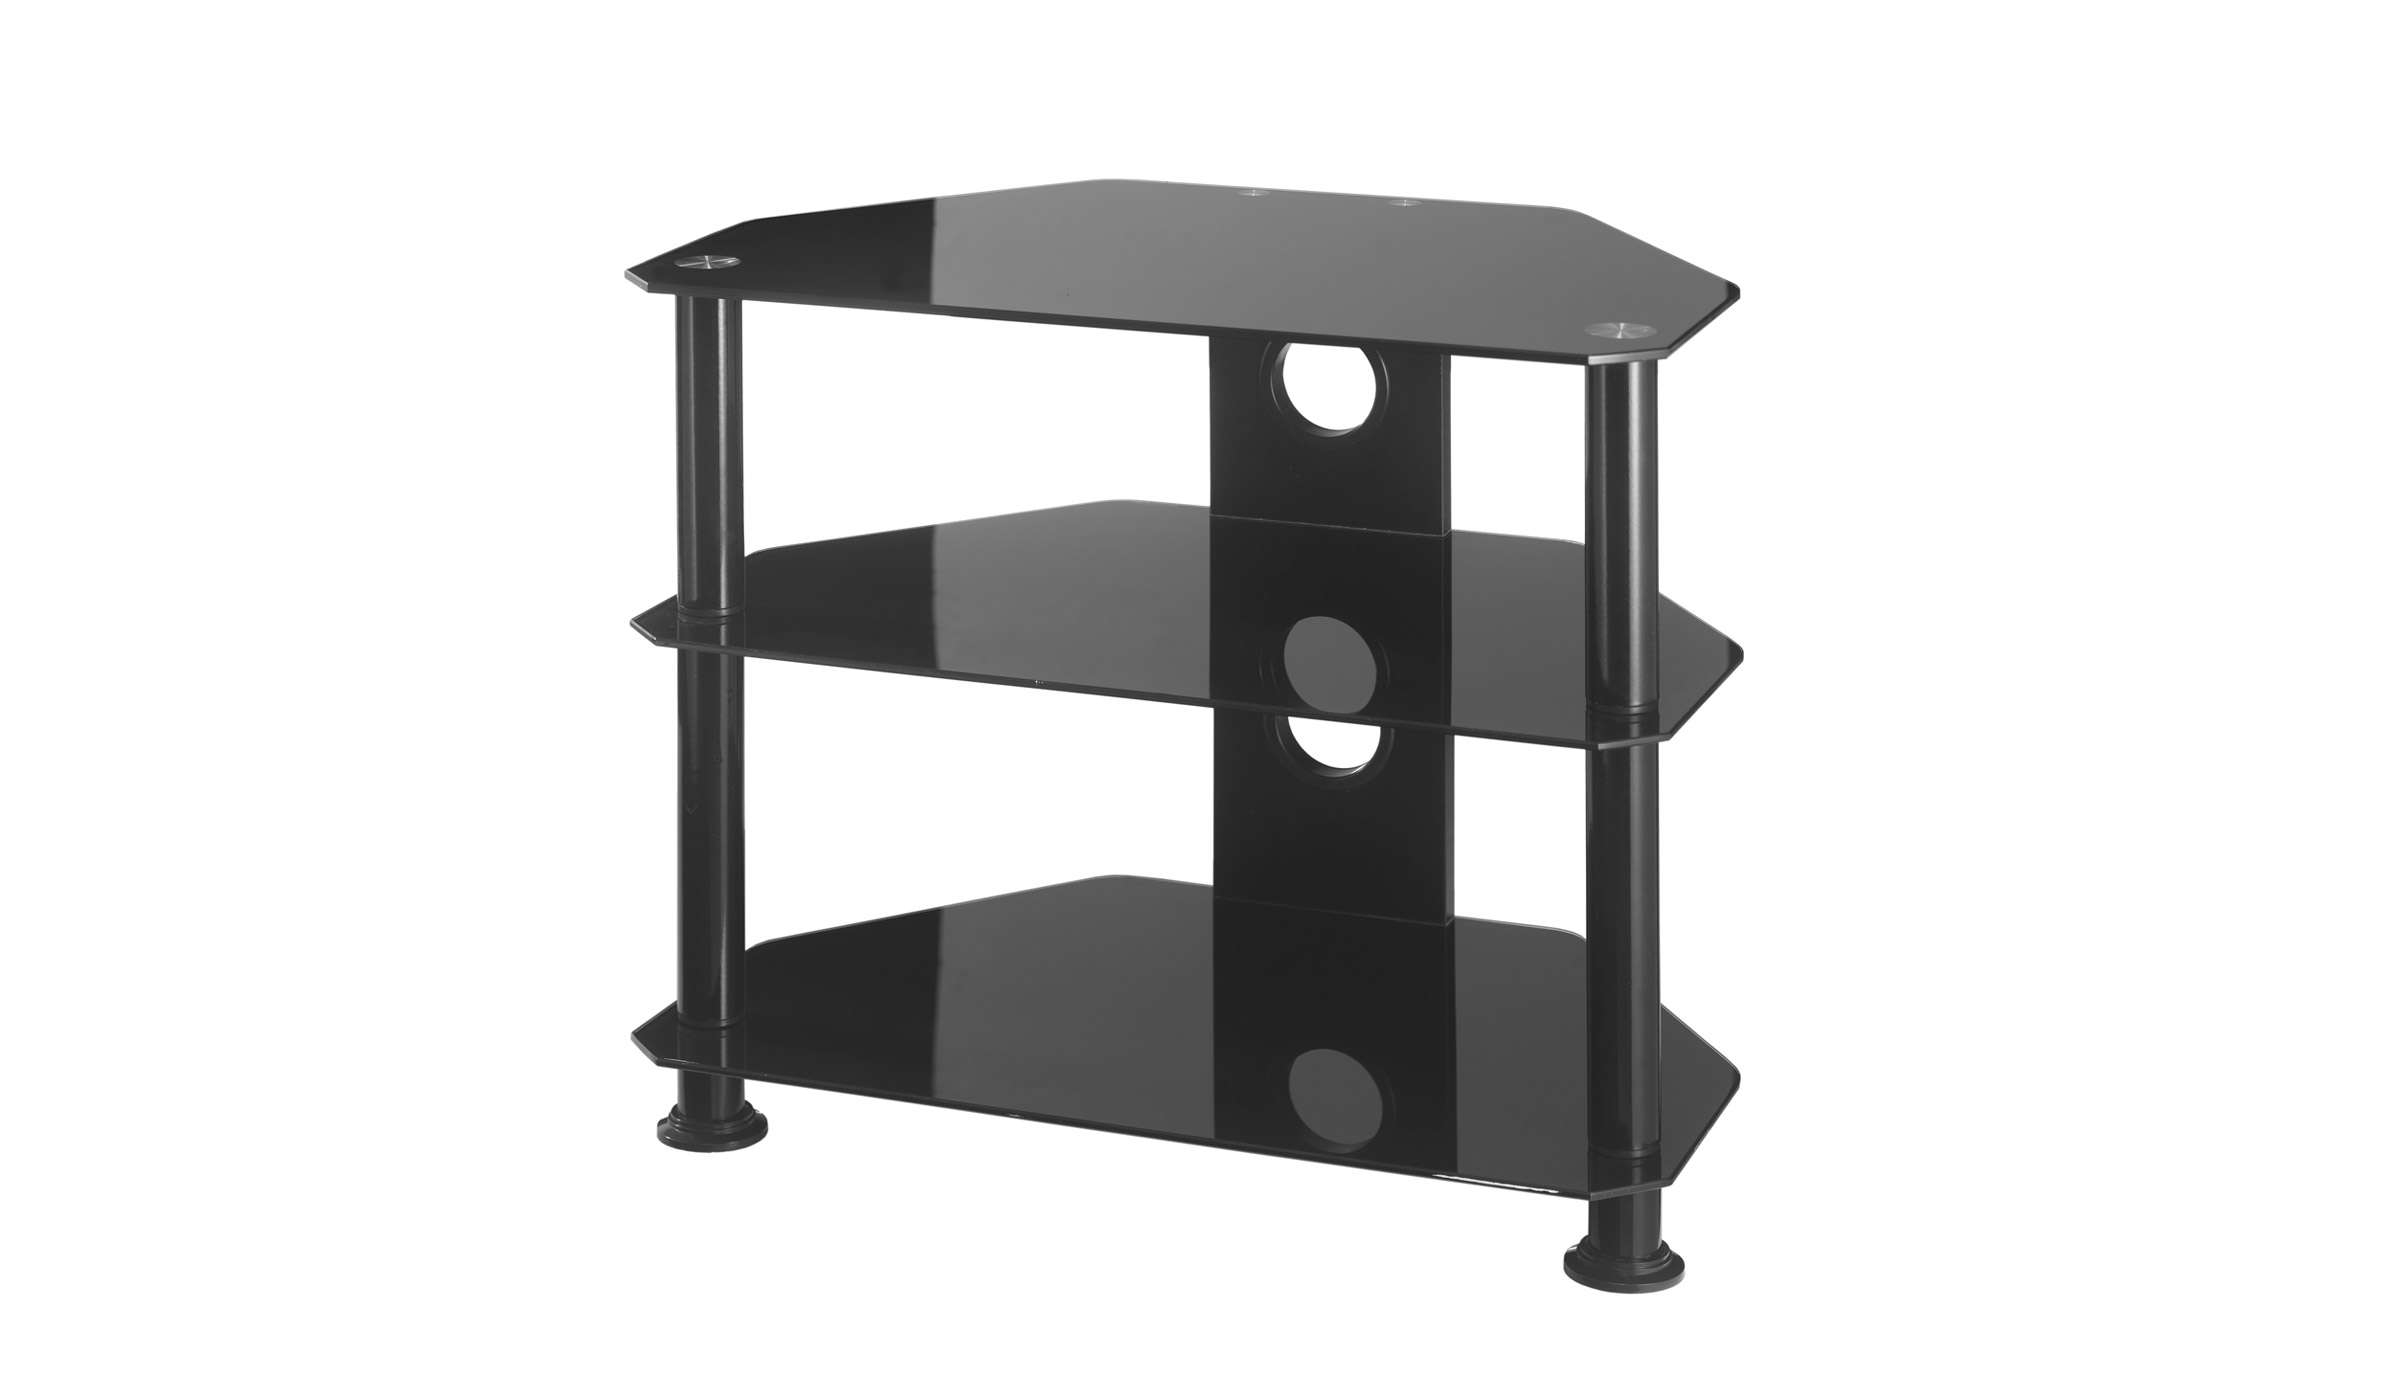 Small Glass Corner Tv Stand Up To 26 Inch Tv | Mmt Db600 For Small Corner Tv Cabinets (View 14 of 20)